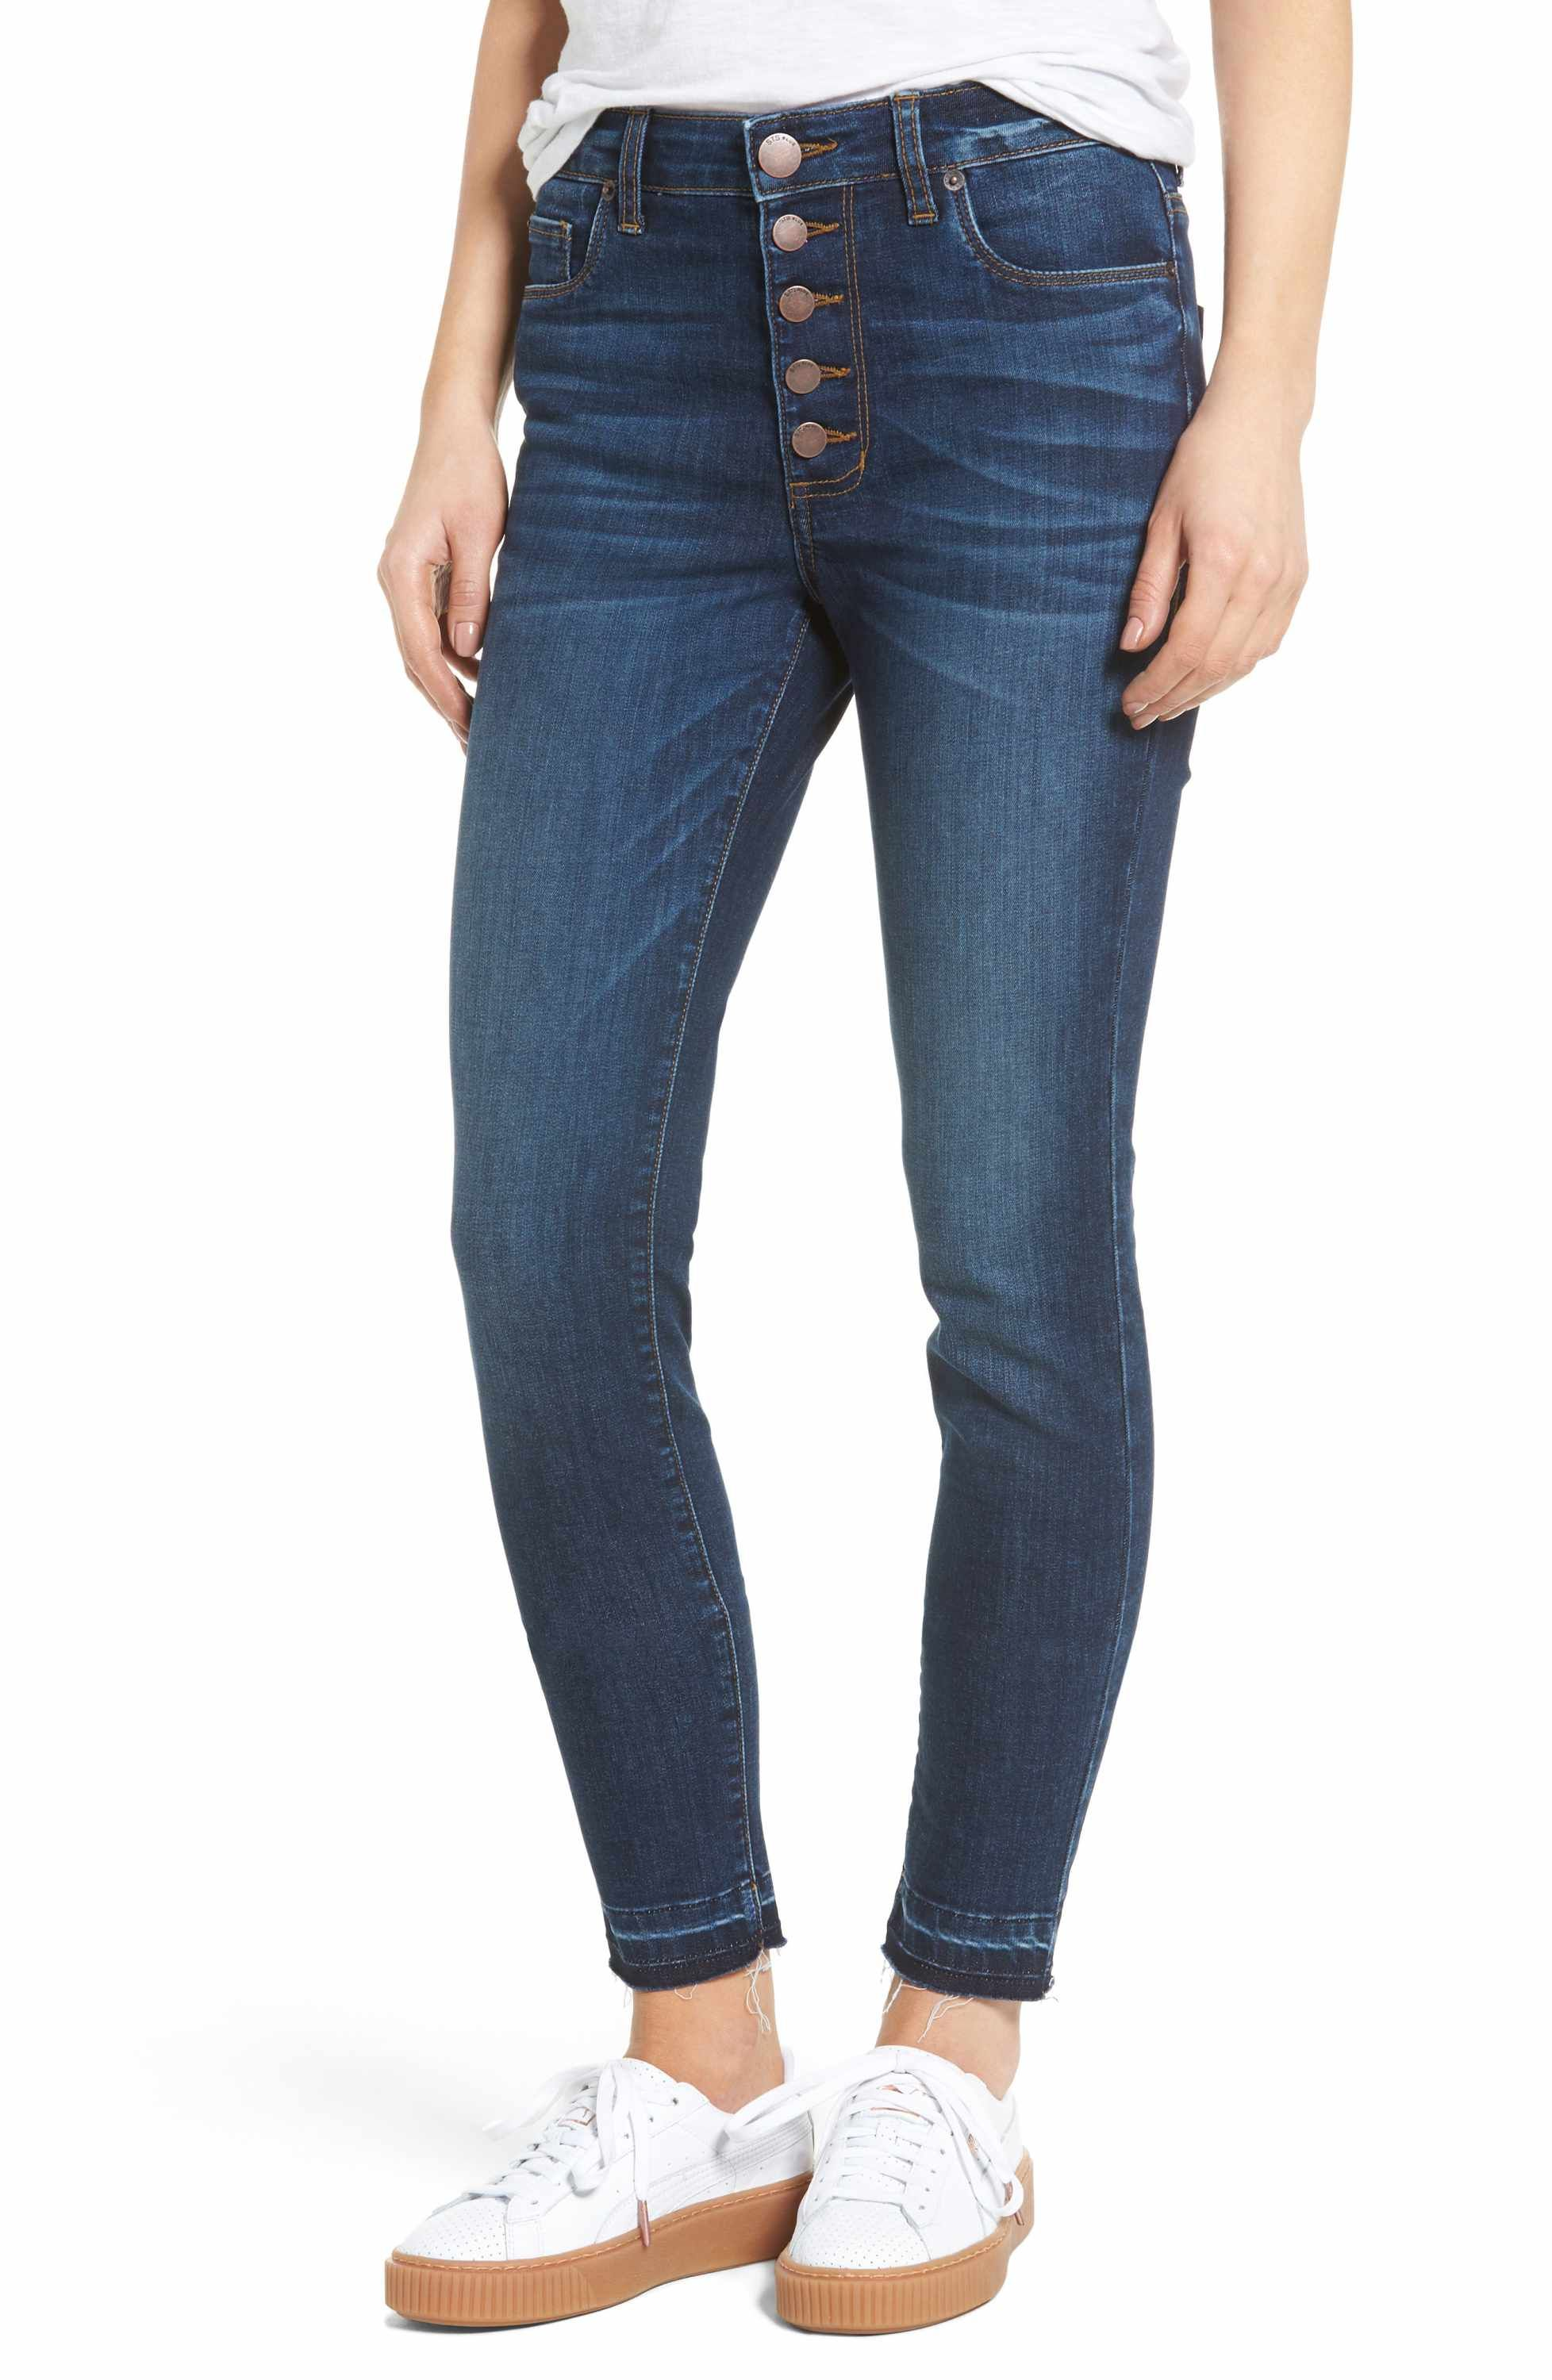 advanced wrangler jean waist product competition comforter ranch comfort ww relaxed jeans outlet re fit barrel with